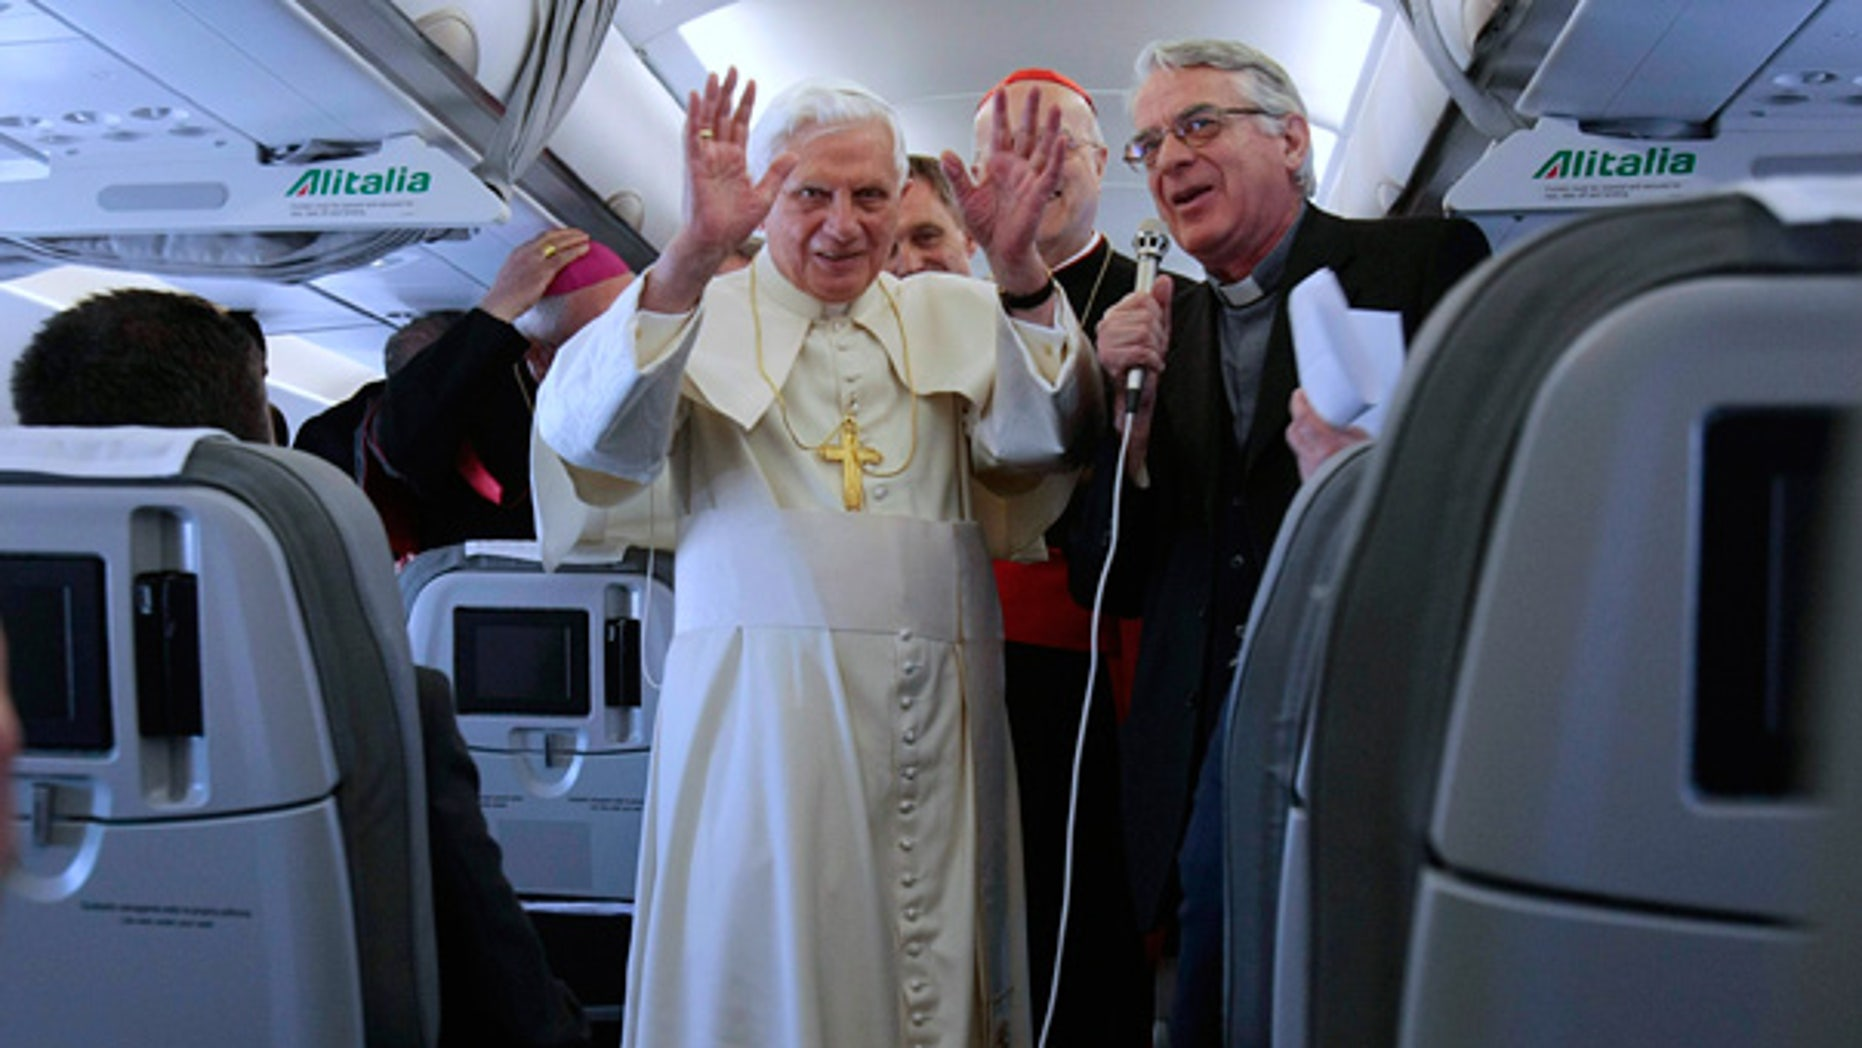 May 11: Pope Benedict XVI, left, flanked by Vatican spokesperson Father Federico Lombardi, aboard a plane enroute to Lisbon, Portugal.